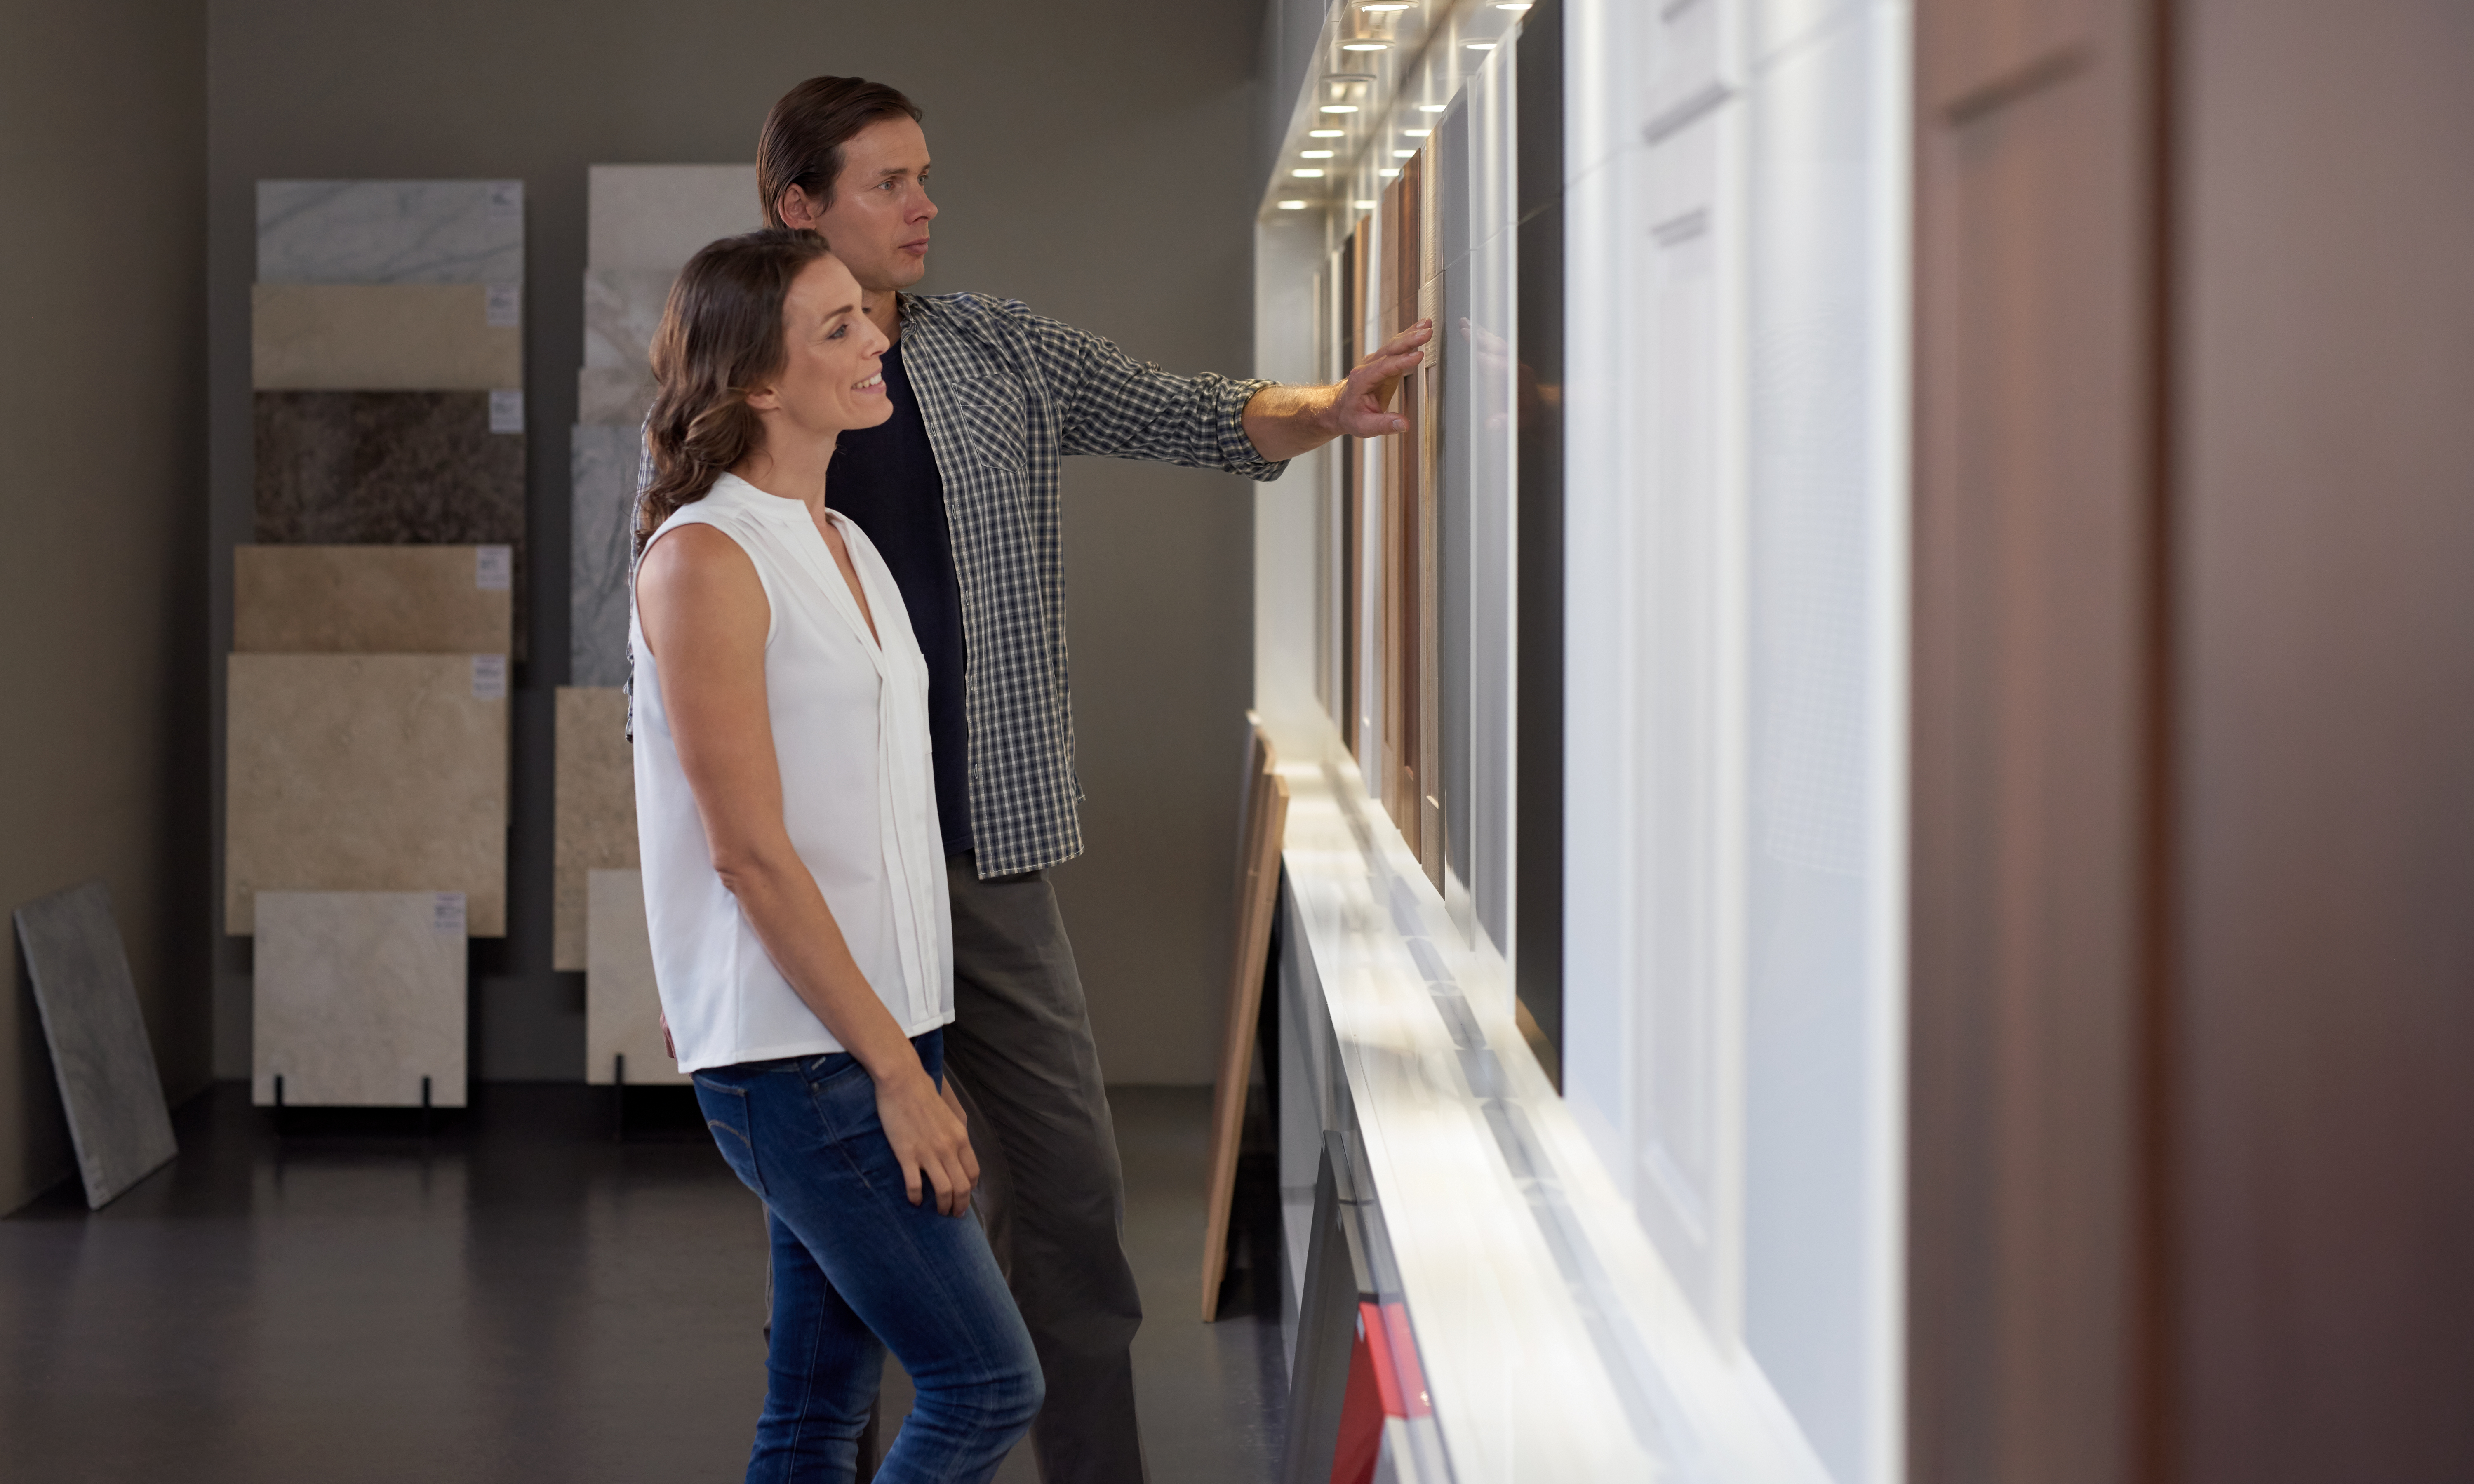 Homeowners exploring kitchen design options.